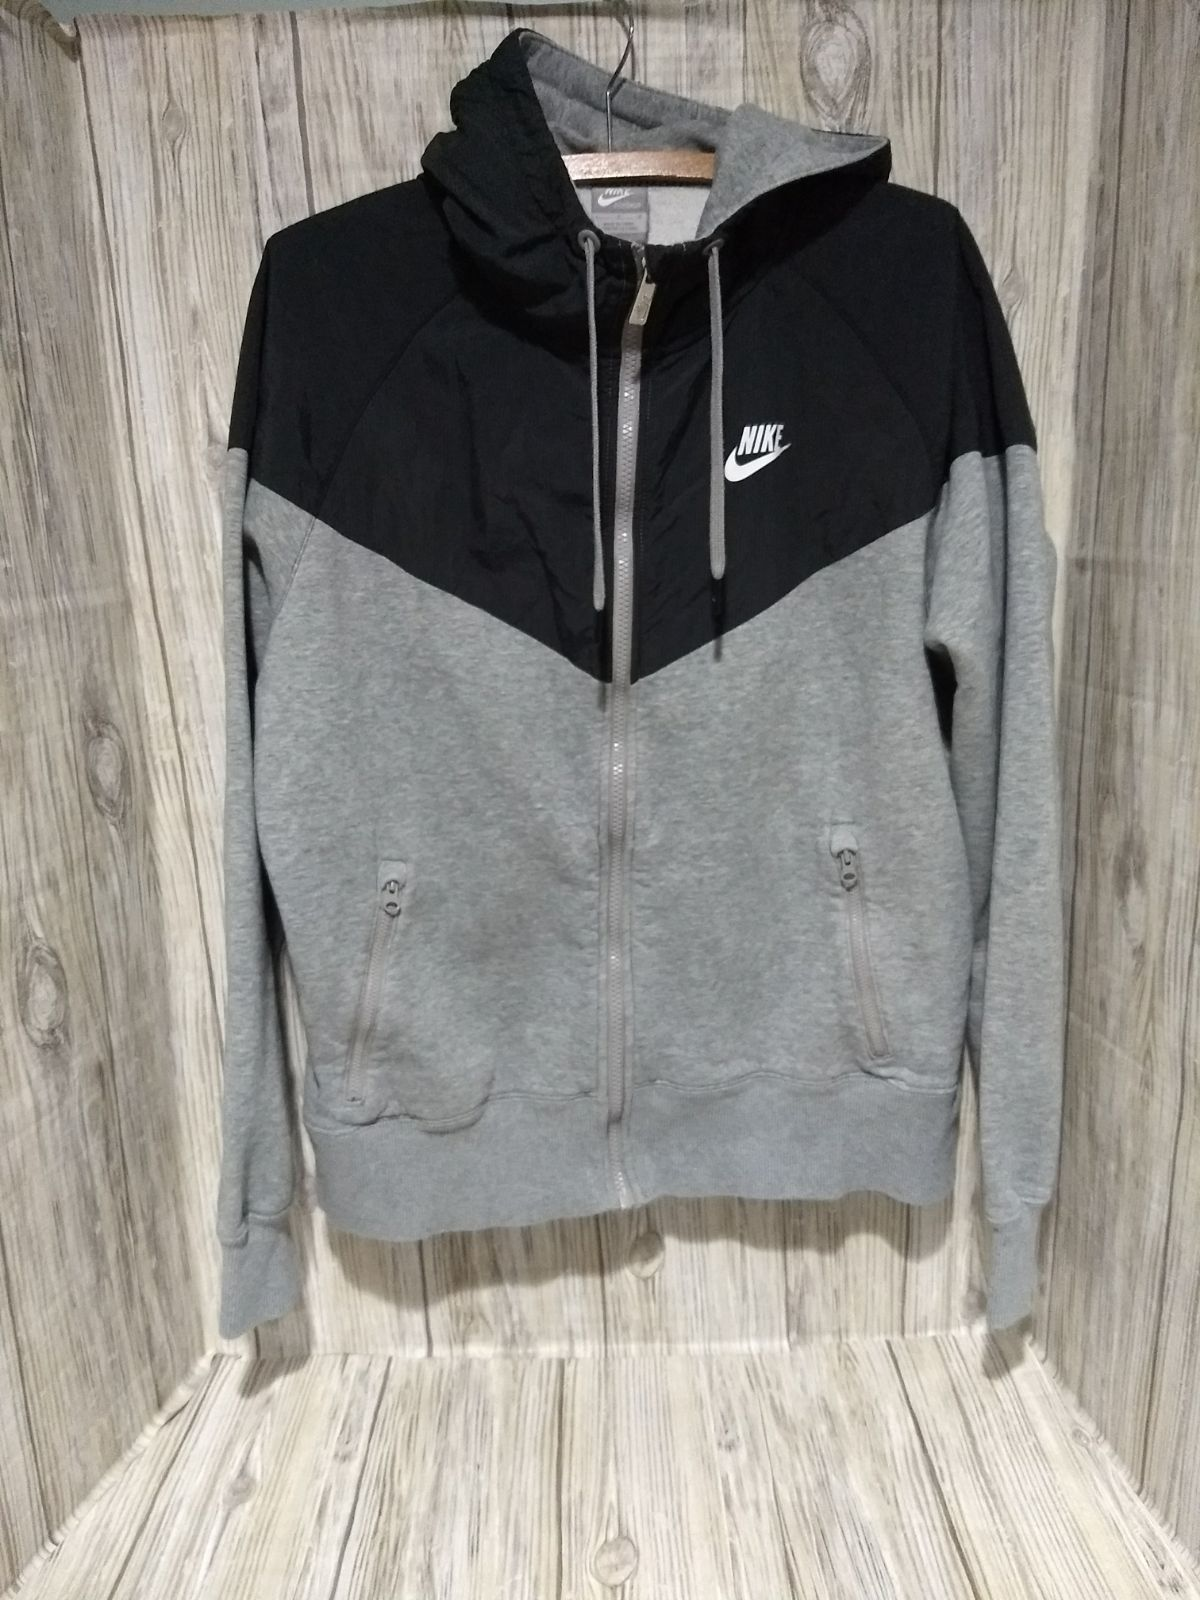 Nike Windrunner Gray and Black Full Zip-up Hoodie Jacket 502639-063 Mens  Size Large Preloved 2a5335c7a